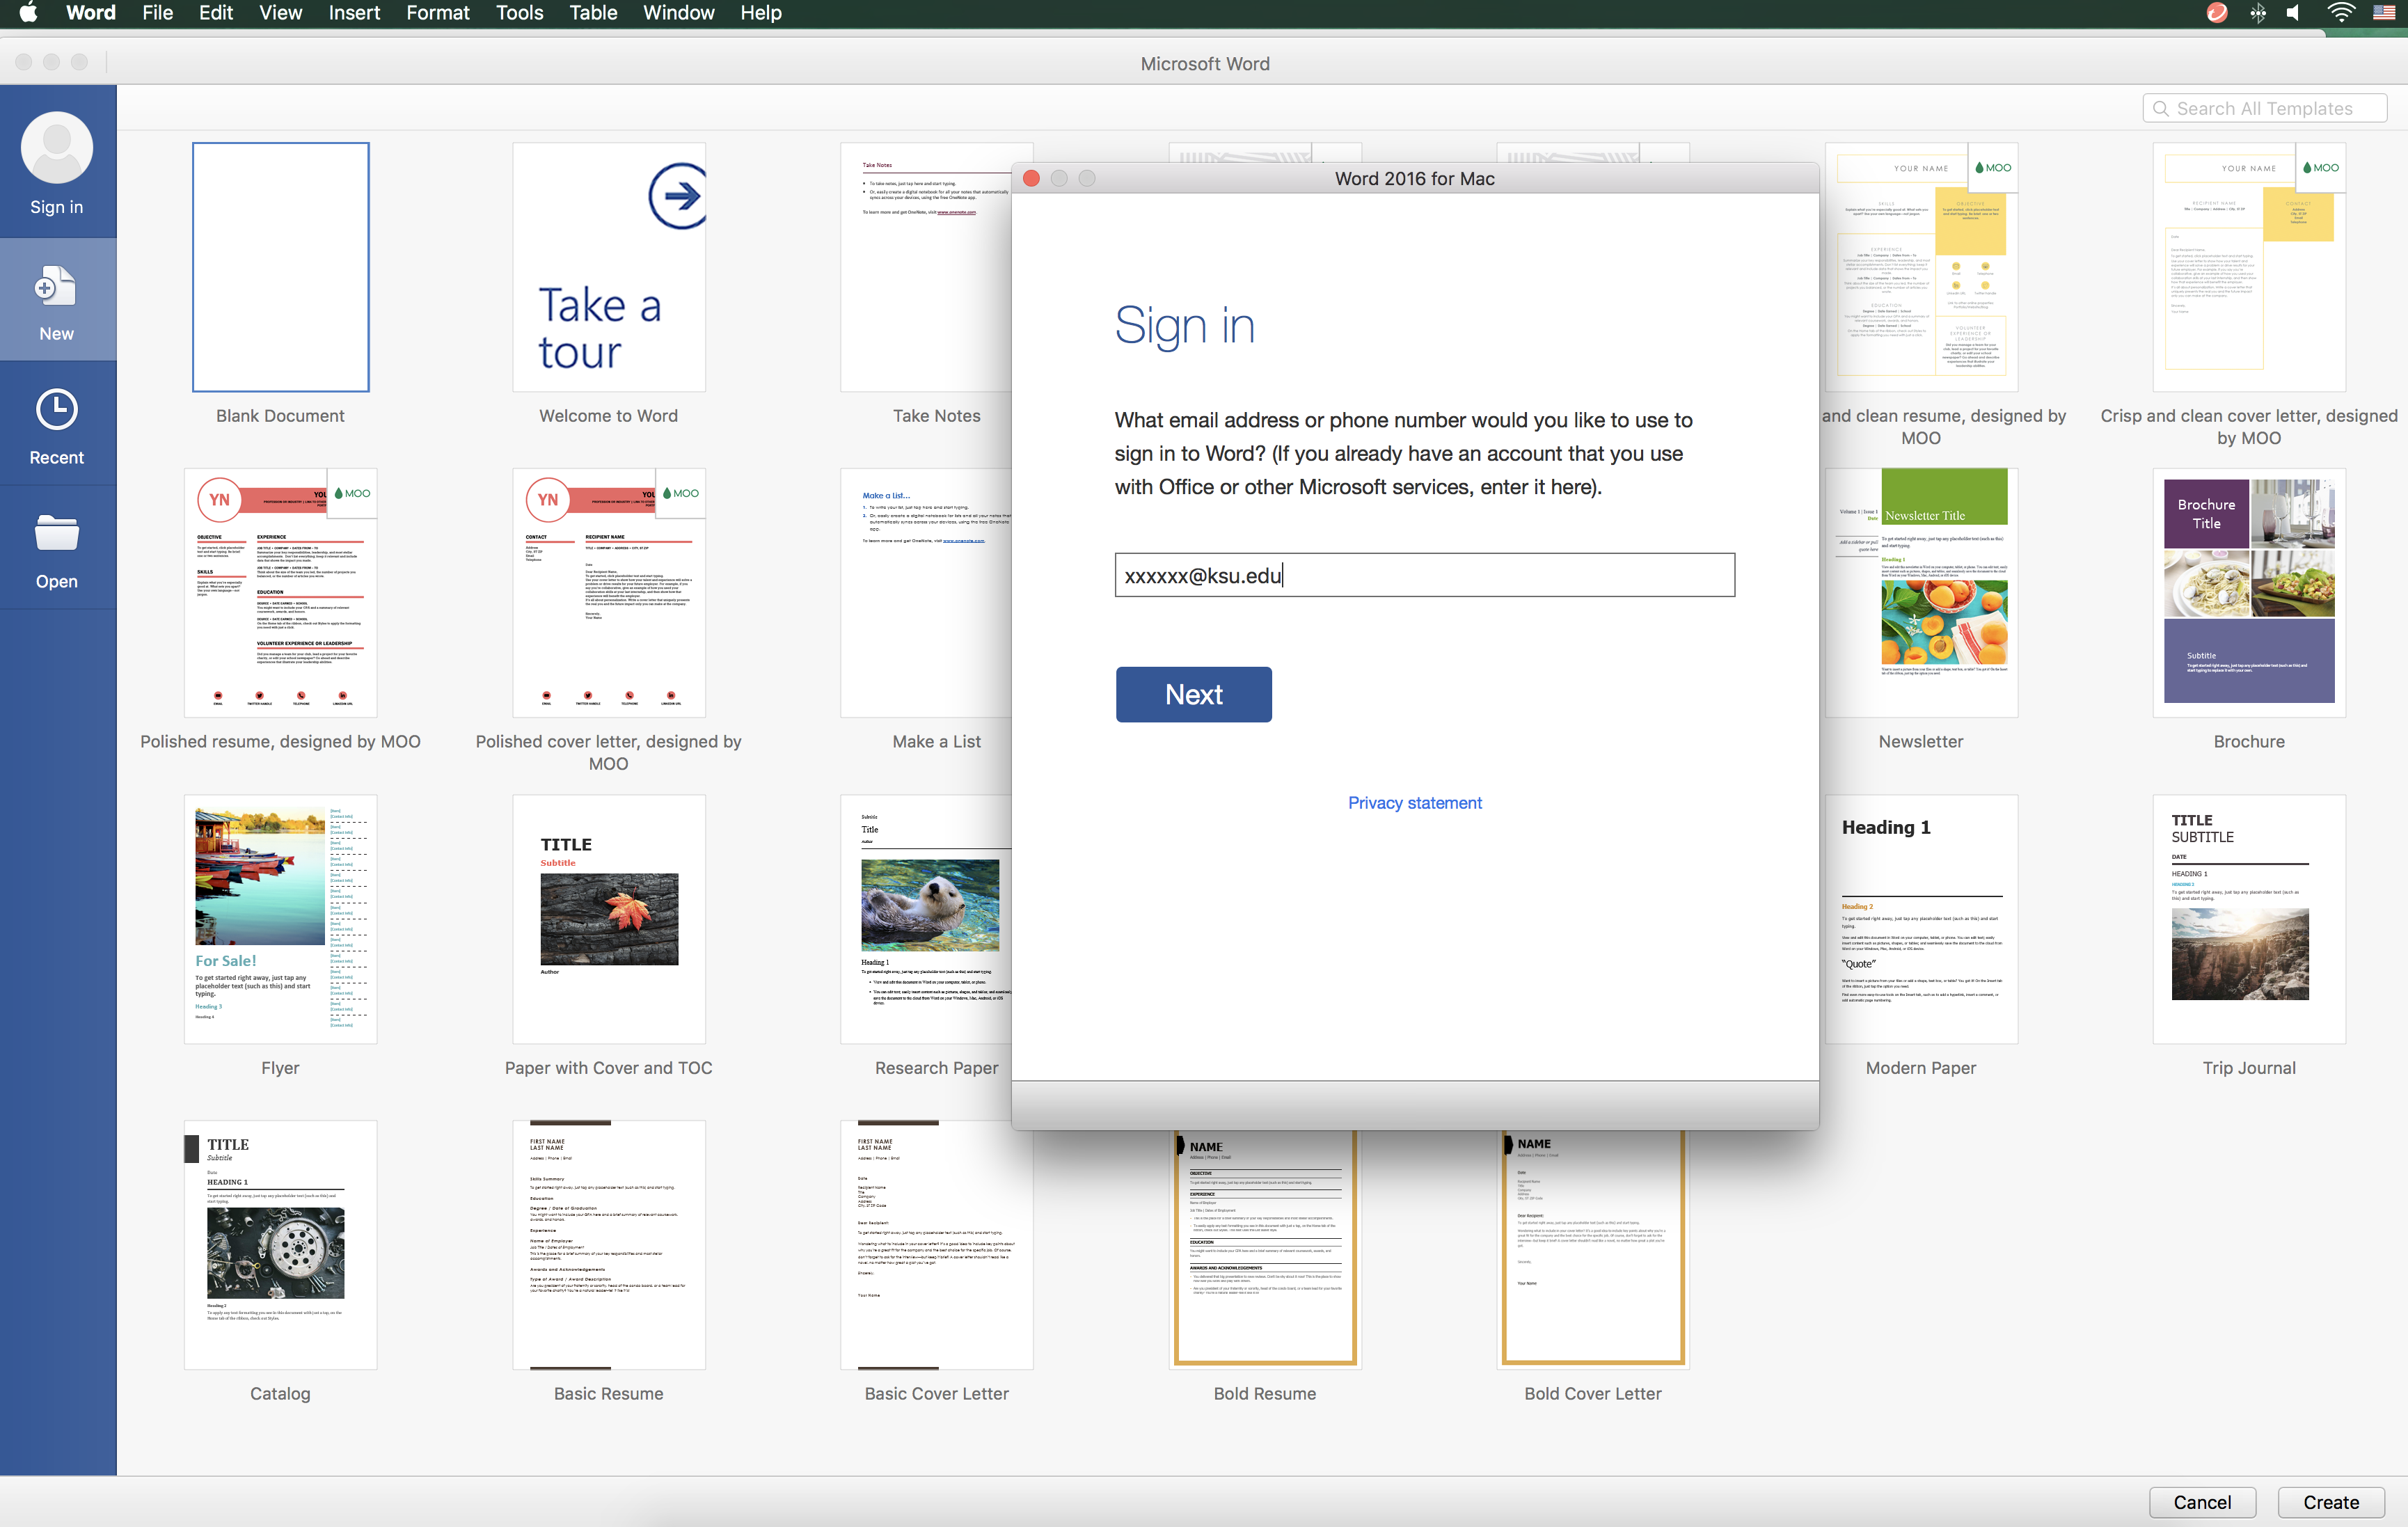 Knowledge - Sign Out/Sign In to Office 365 on Mac OS